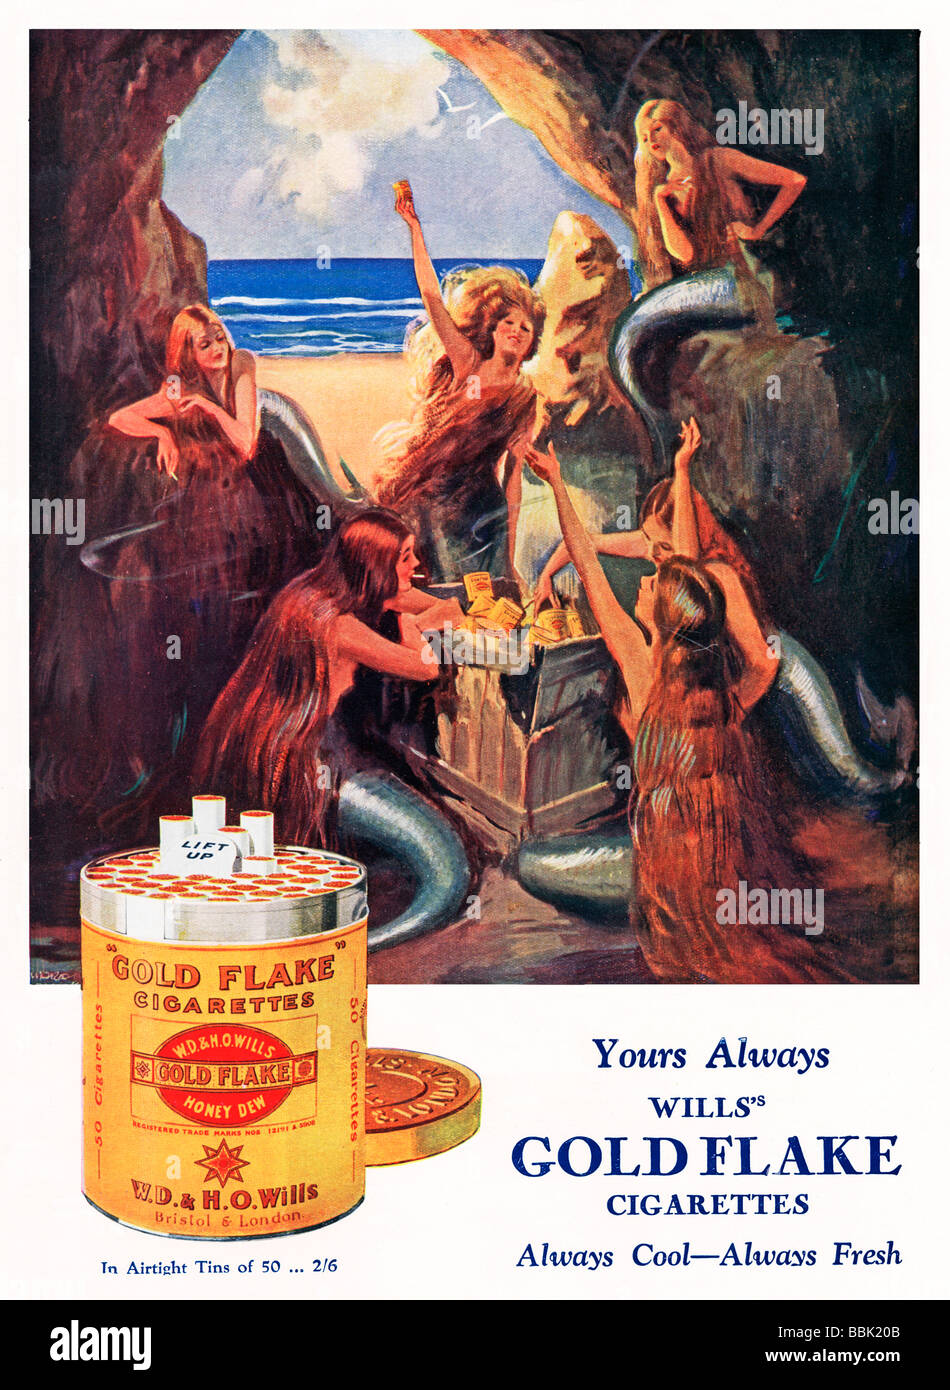 Wills Gold Flake the mermaids are delighted to find a crate of cigarettes in their cave in this 1920s advert - Stock Image